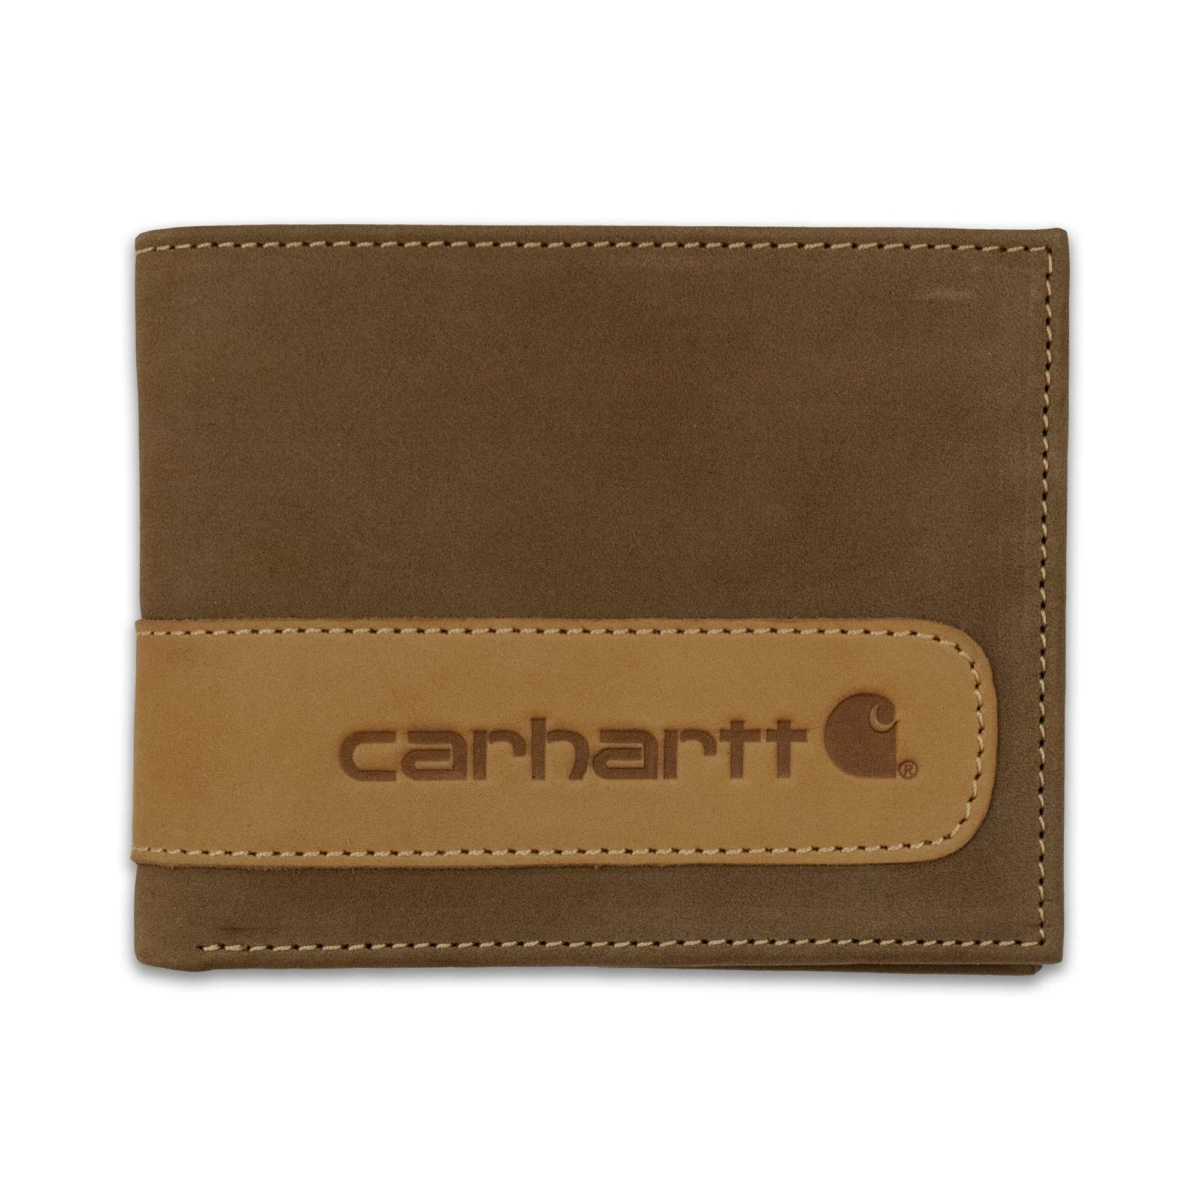 Carhartt Two-Tone Billfold with Wing Wallet Carhartt Brown USA - GOOFASH - Mens WALLETS